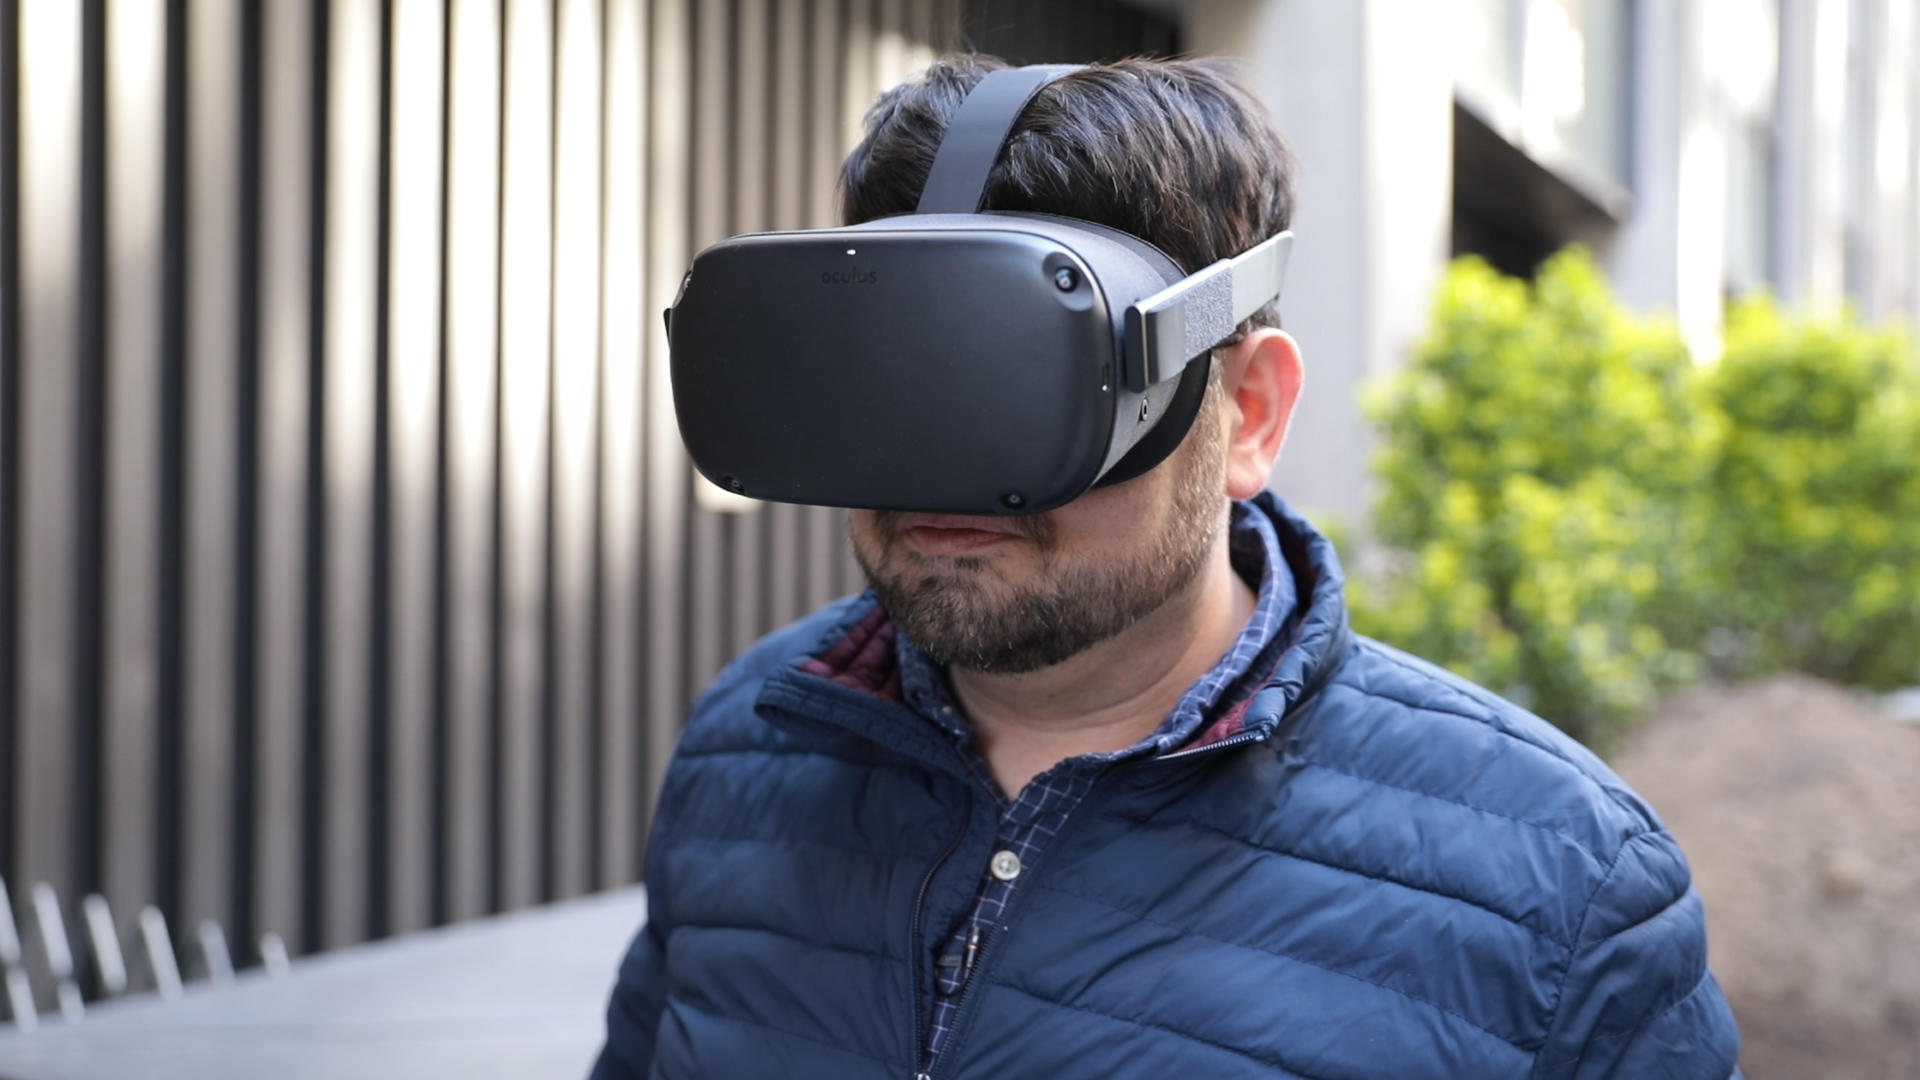 , Get the amazing Oculus Quest VR headset for a mere $199 – Source CNET Computer News, iBSC Technologies - learning management services, LMS, Wordpress, CMS, Moodle, IT, Email, Web Hosting, Cloud Server,Cloud Computing